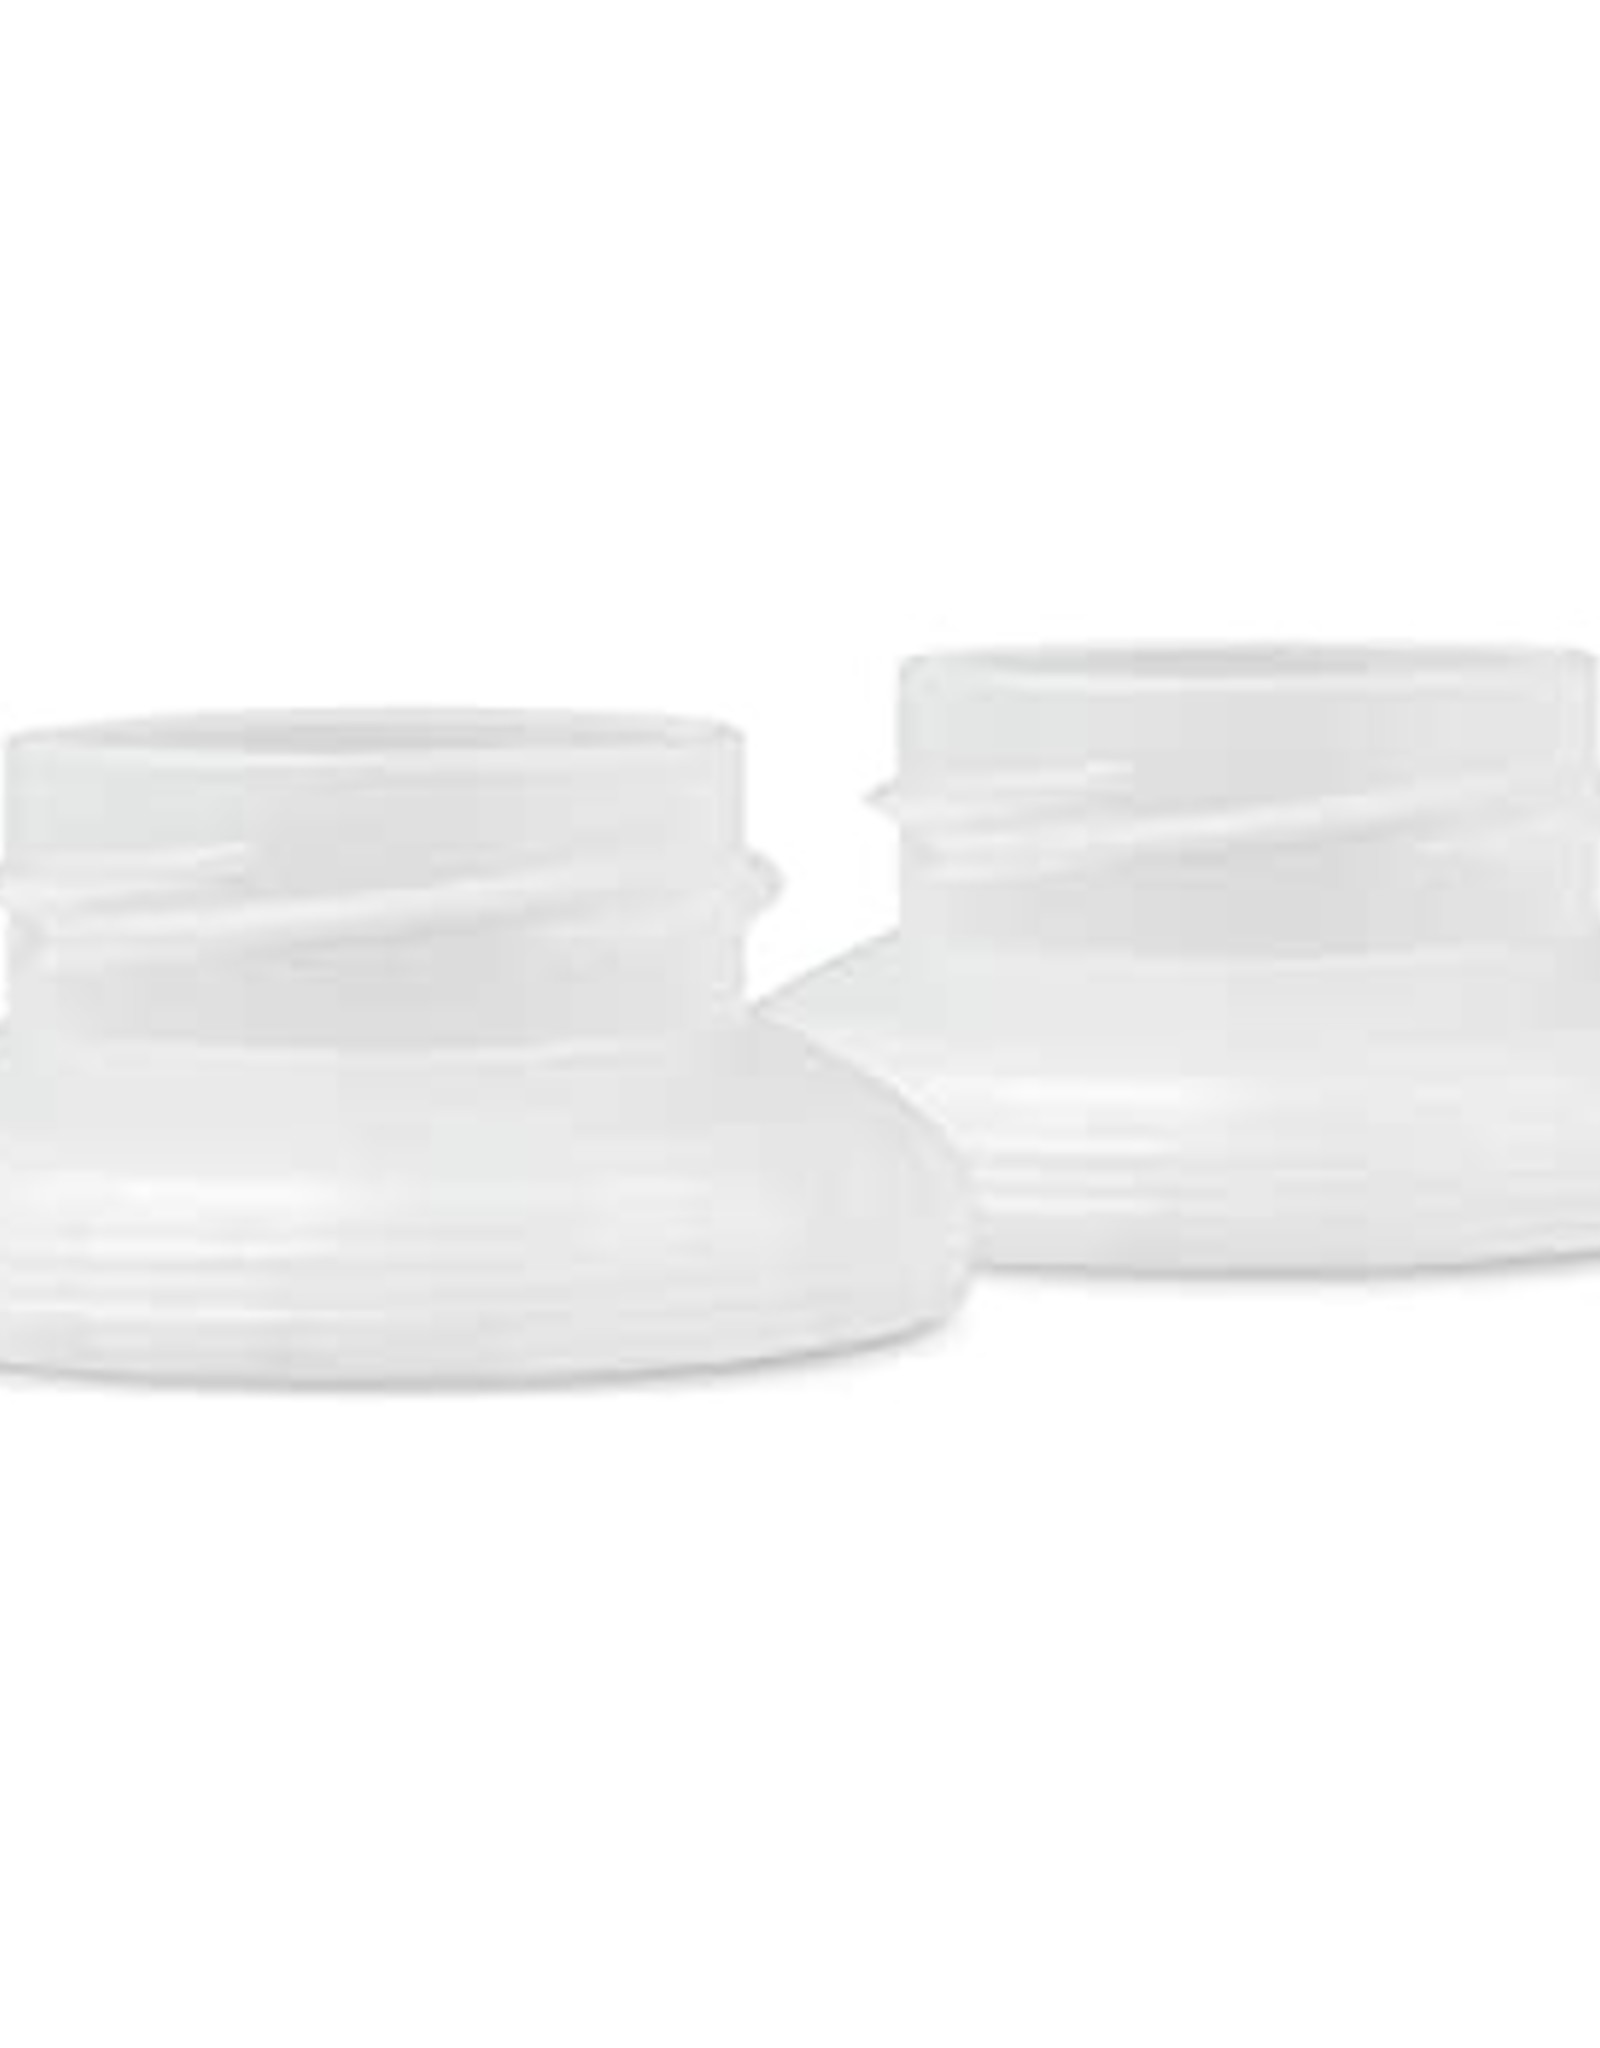 Olababy Olababy, Adapters for GentleBottle and Medela Pumps